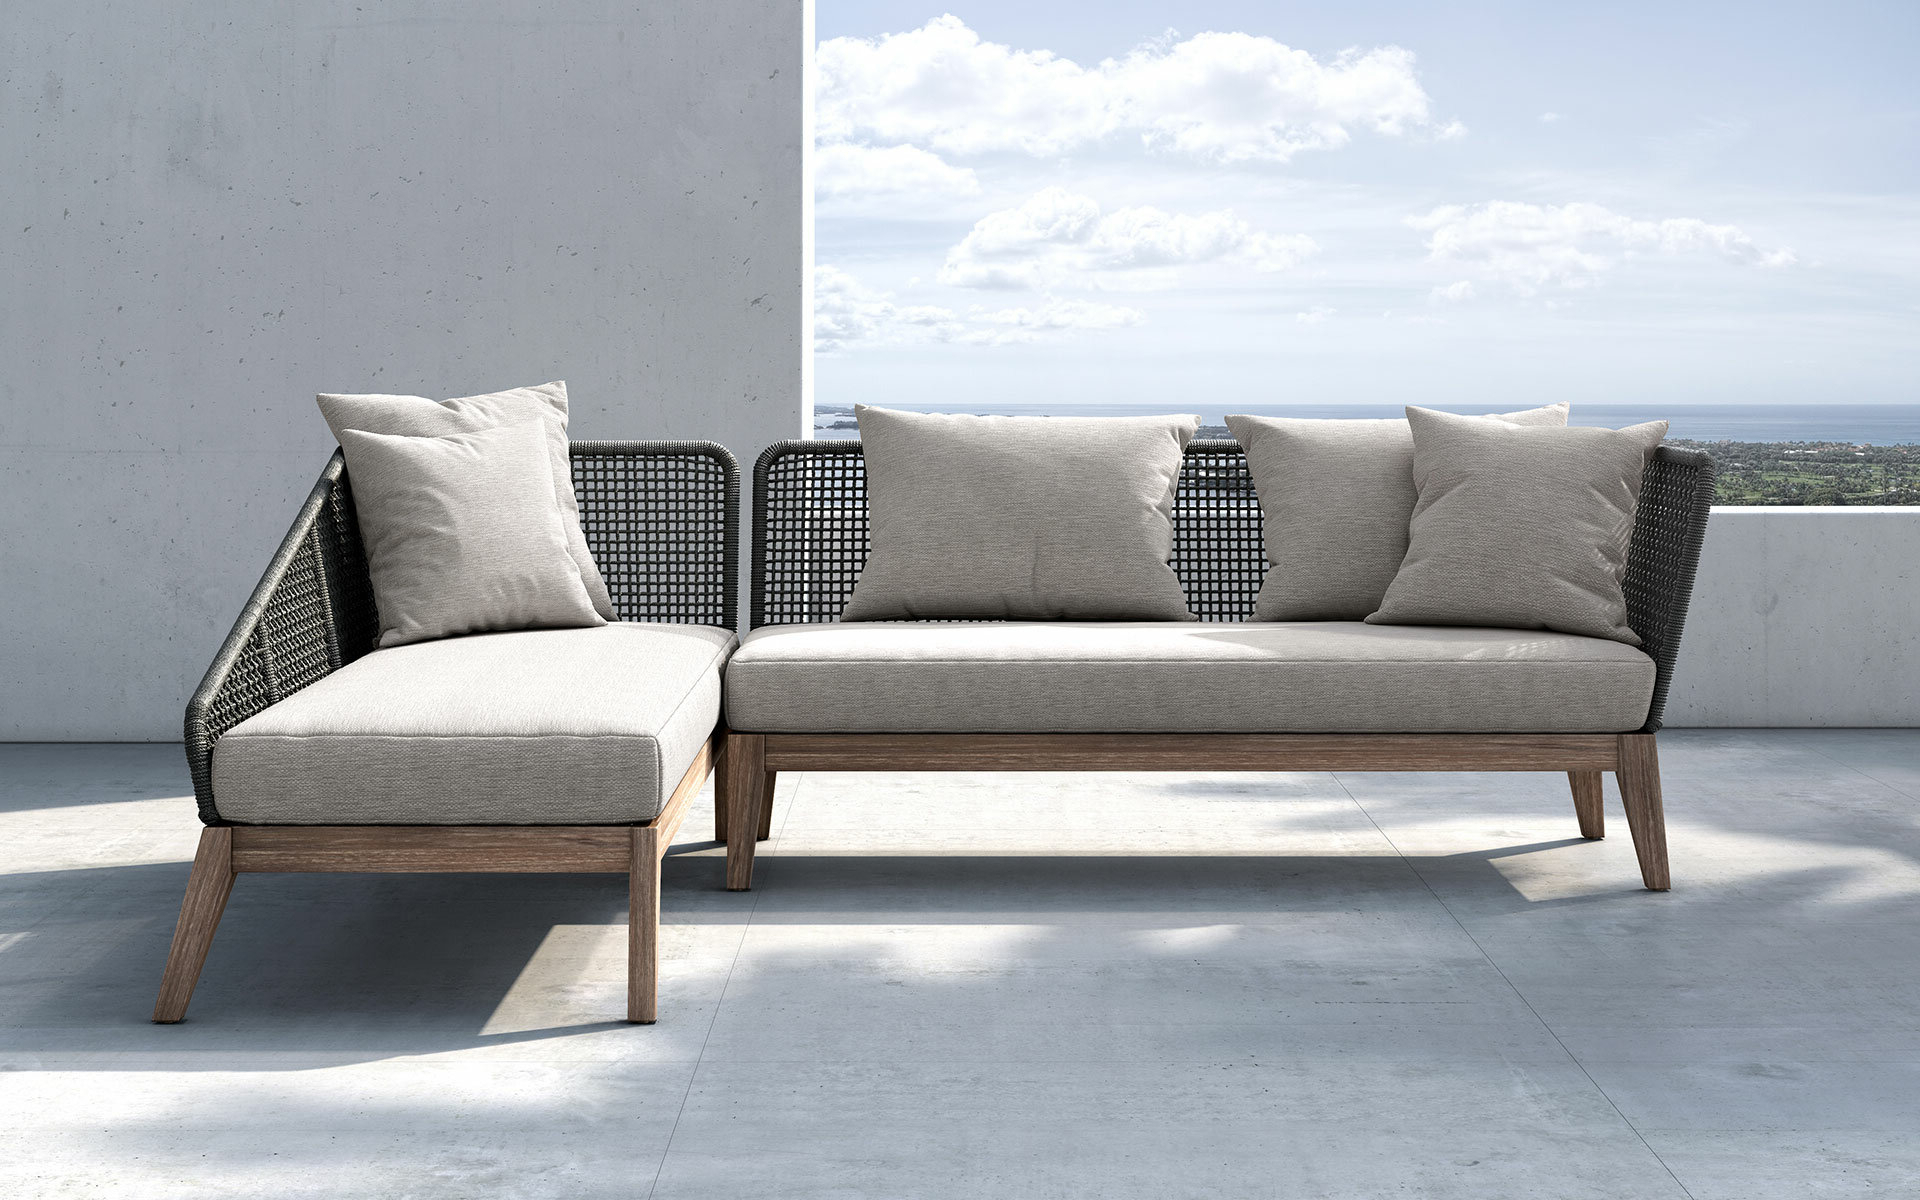 Popular Netta Patio Sectional With Cushion Inside Greta Living Patio Sectionals With Cushions (View 12 of 20)